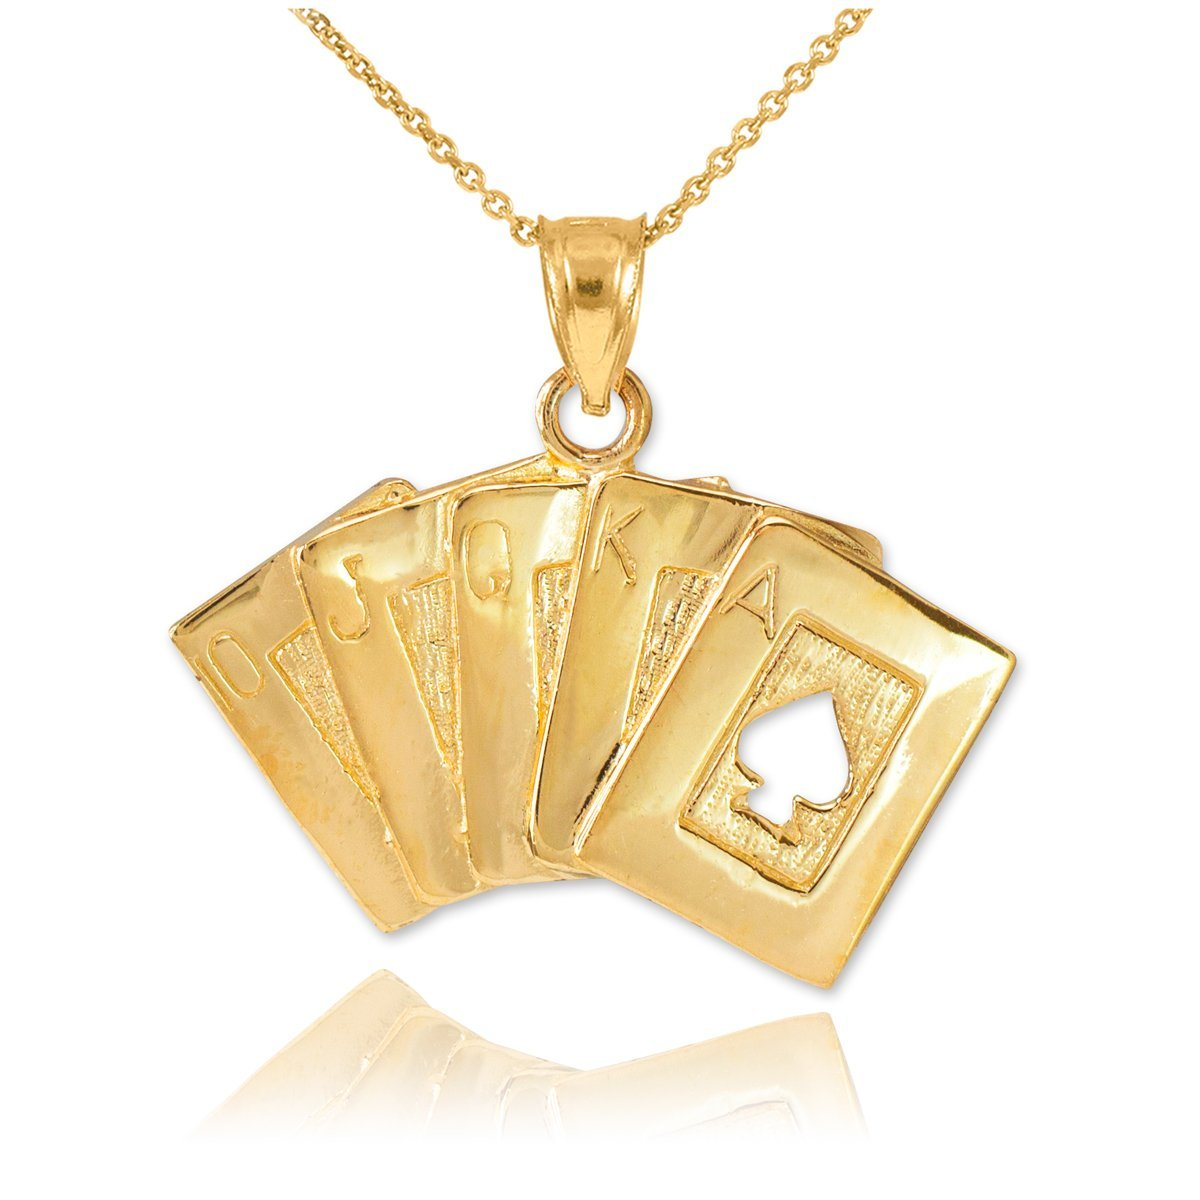 Mens Fine Jewelry Solid 14k Yellow Gold Royal Flush of Spades Poker Pendant Necklace